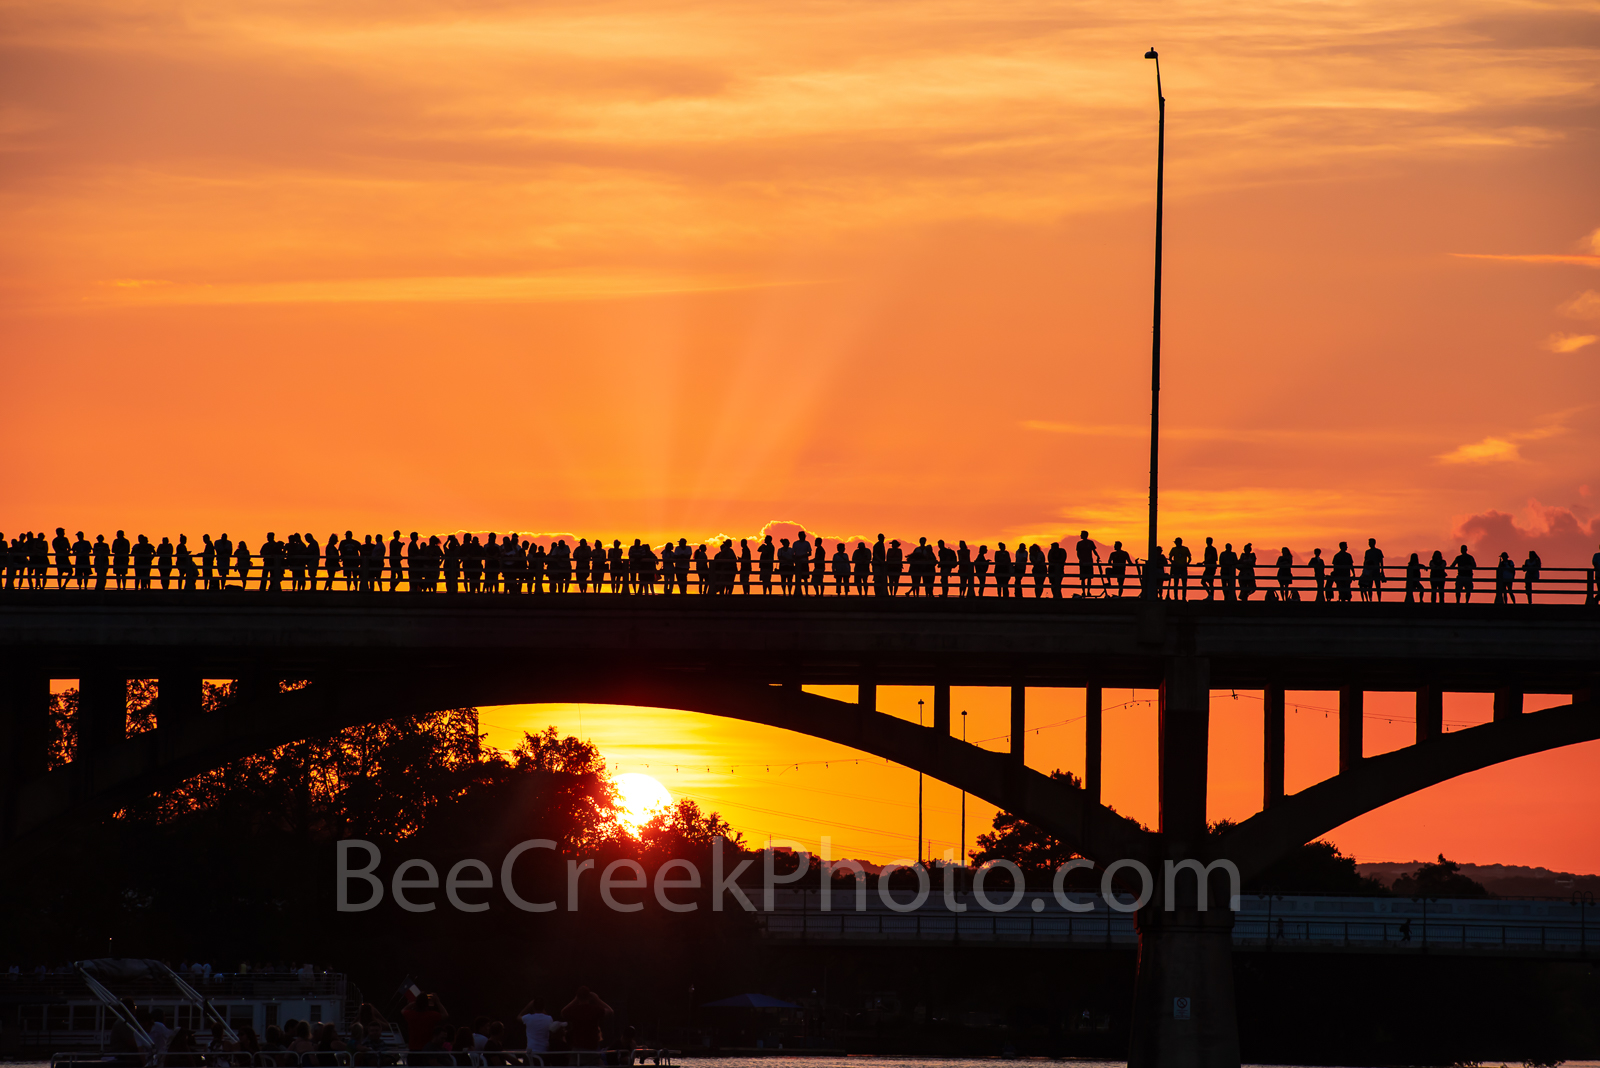 Austin, Texas, Bats, Congress Bridge, Austin Bats, cityscape, city, anticipation, street scene, people, siloutte, bat watch, spectators, orange glow,